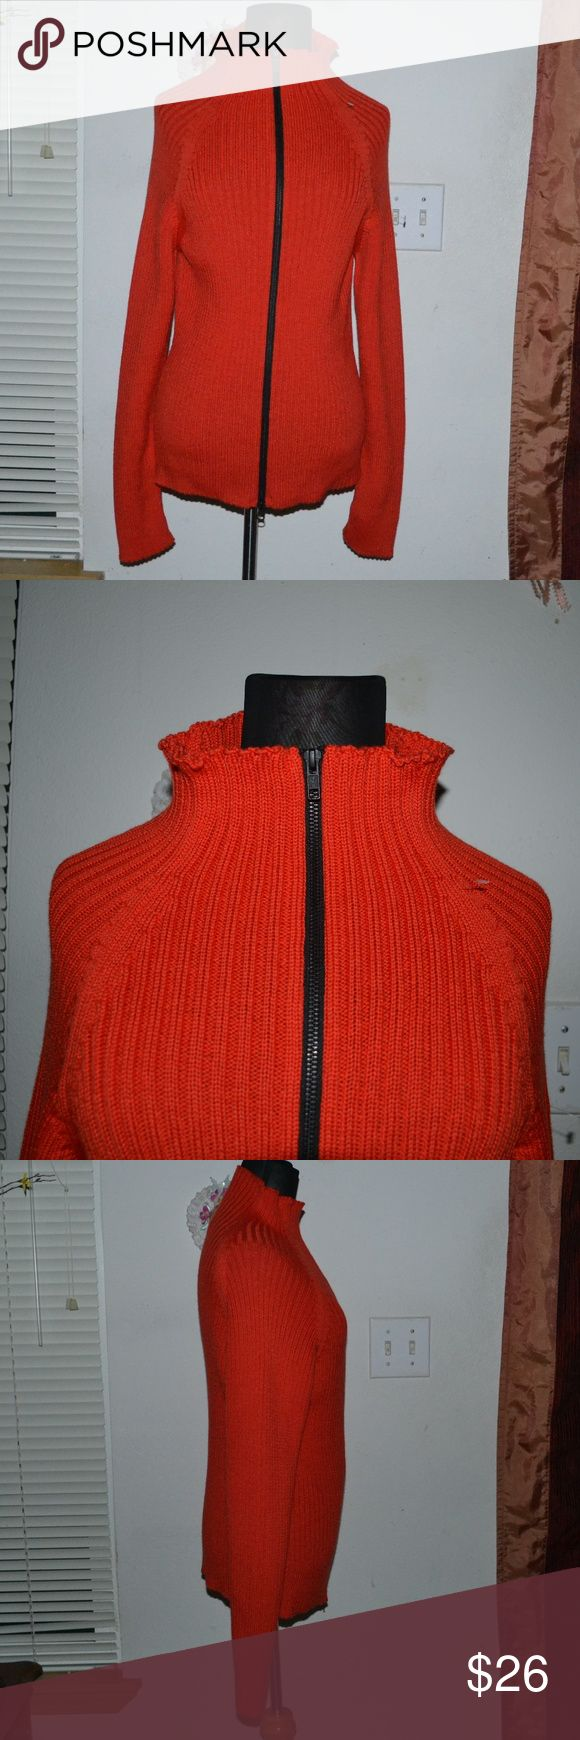 Poy Poy Copenhagen pure new wool sweater I ship Monday - Friday! sometimes Saturday <3 No holds or trades!   A beautiful vibrant redish orange zipped up sweater by the brand Poy Poy Copenhagen. In excellent condition. thick & a bit heavy. Size L/XL. Materials: 100%  pure new wool Poy Poy Copenhagen Sweaters